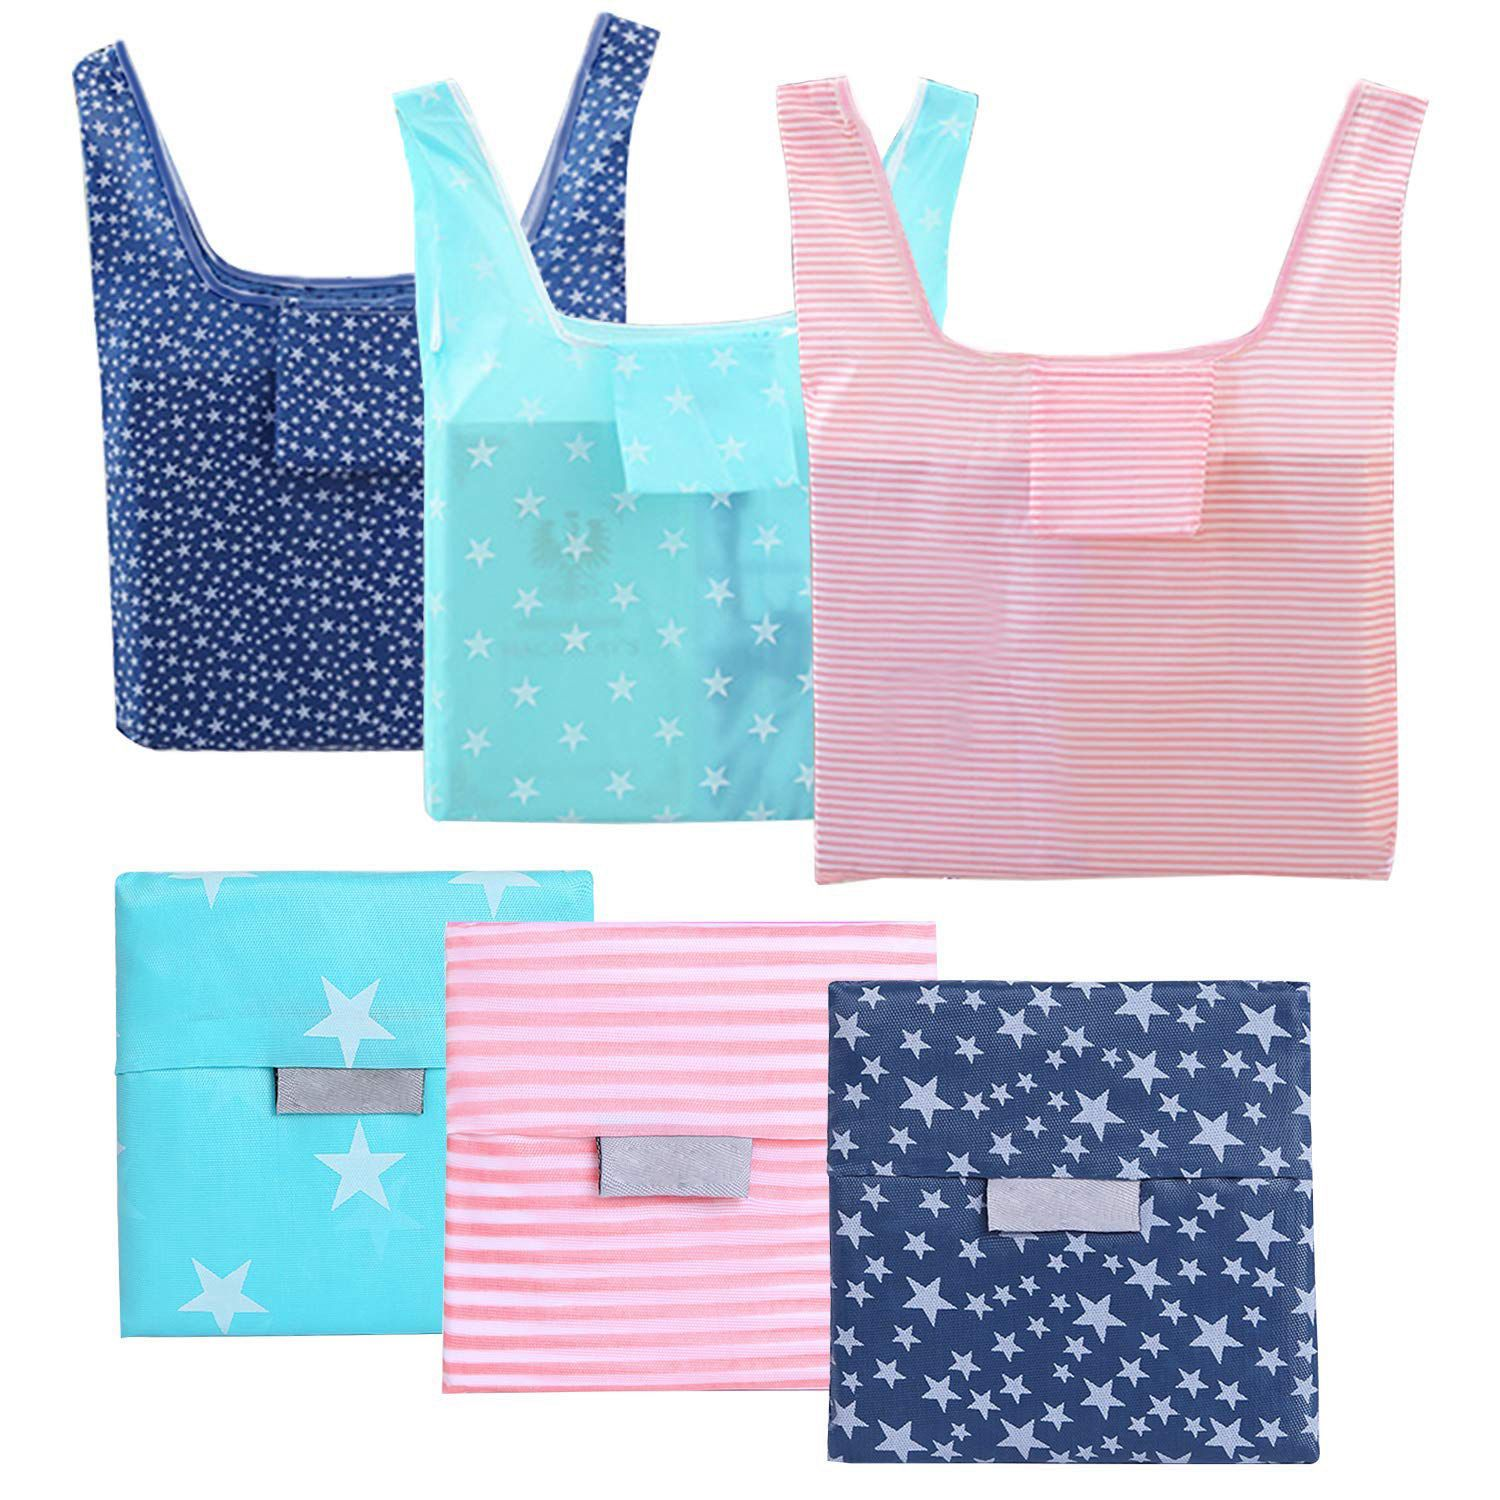 TFTP-6 Pack Reusable Grocery Bags, Foldable Eco-Friendly Shopping Tote,Washable,Waterproof,Durable And Lightweight